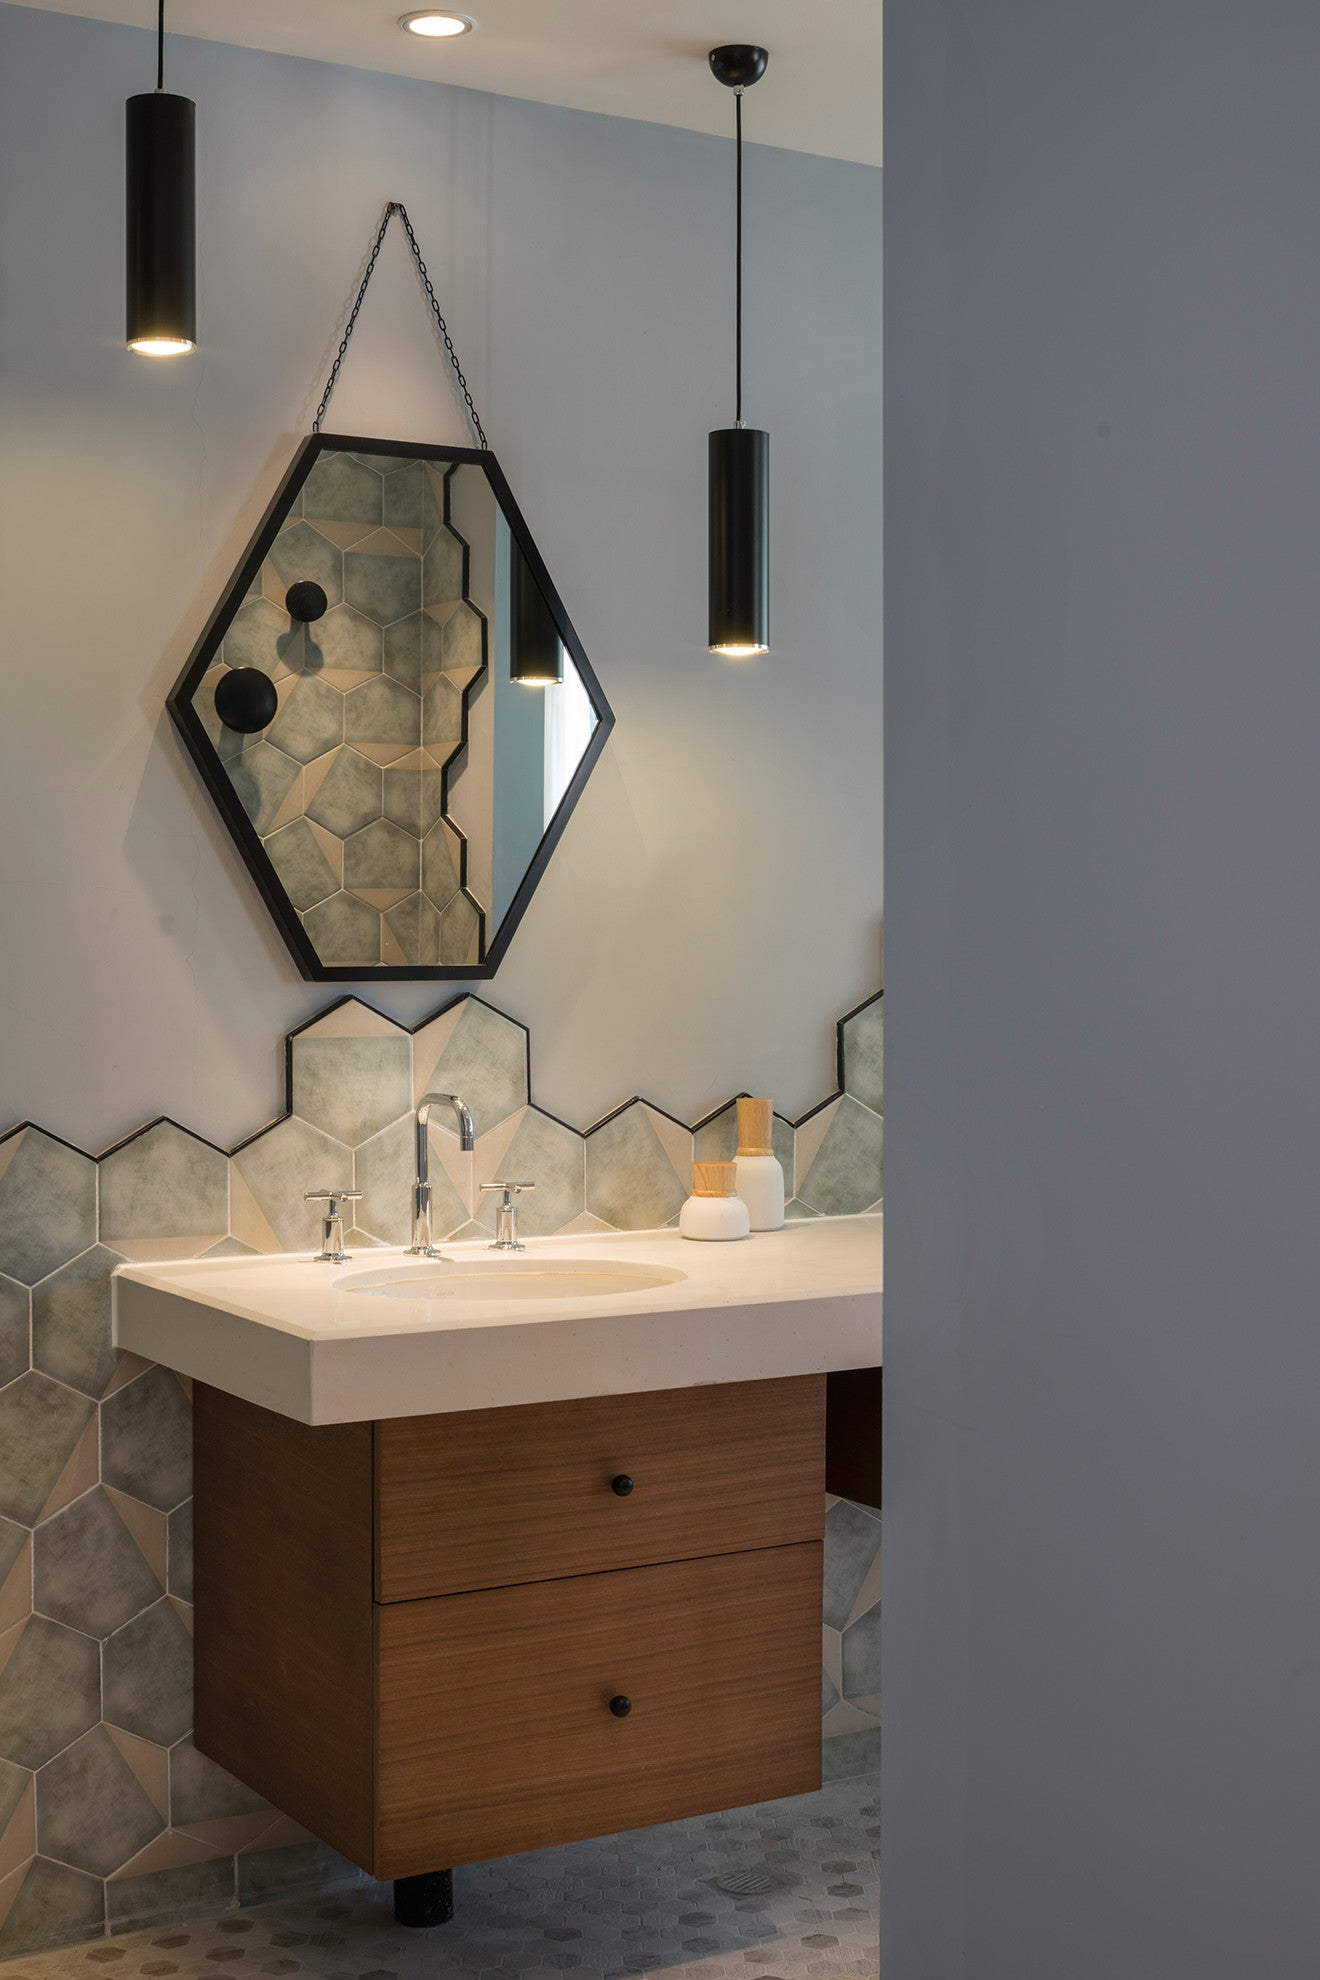 Nanxun Hotel bathroom with hexagon tiles designed by Dariel Studio